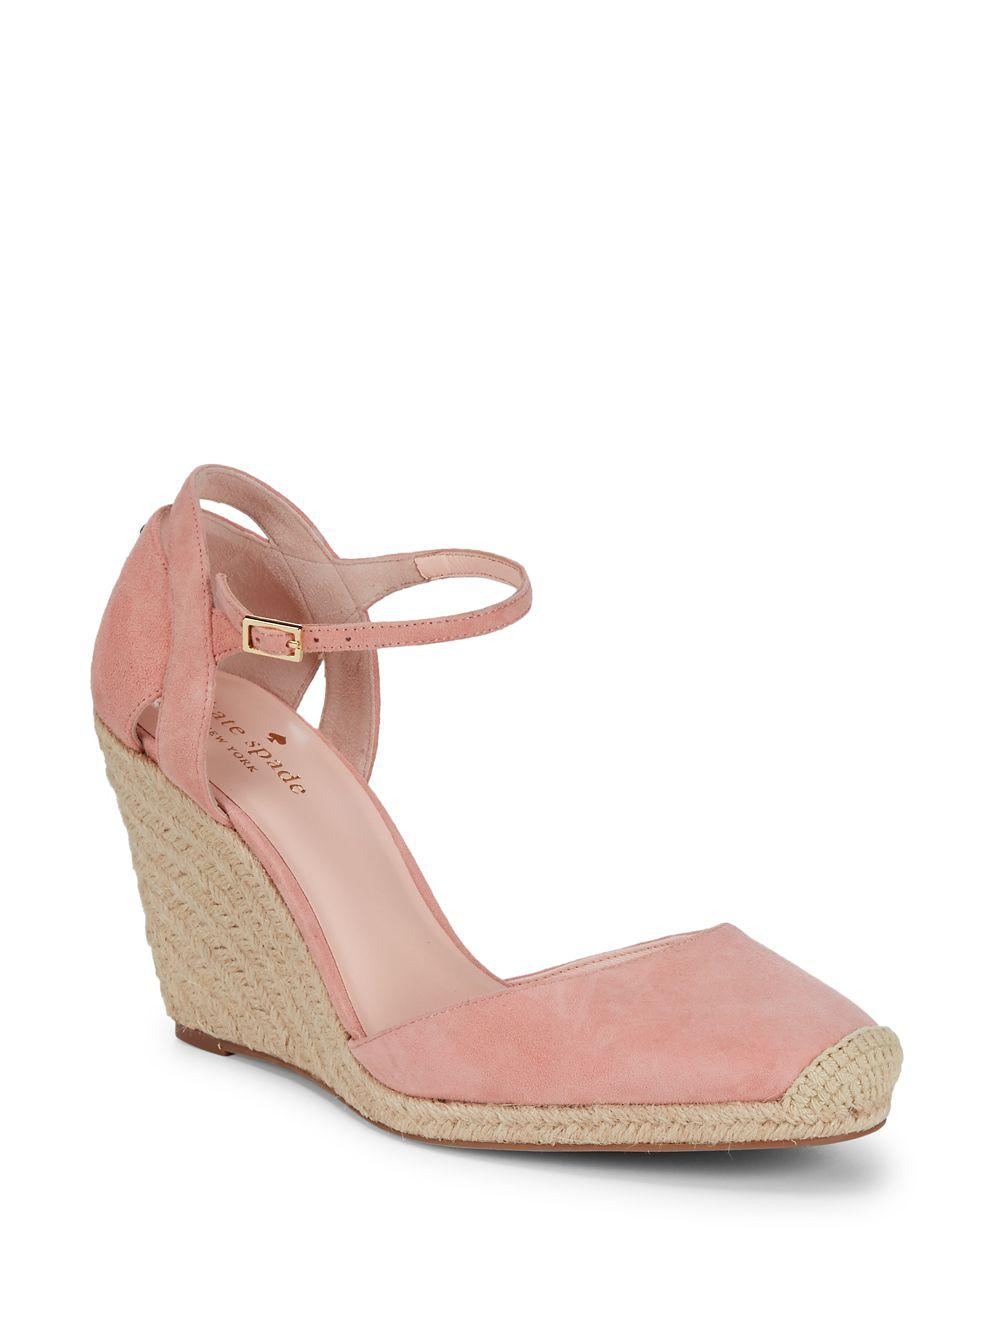 e6e598915997 Kate Spade Giovanna Espadrille Wedge Sandals in Pink - Lyst